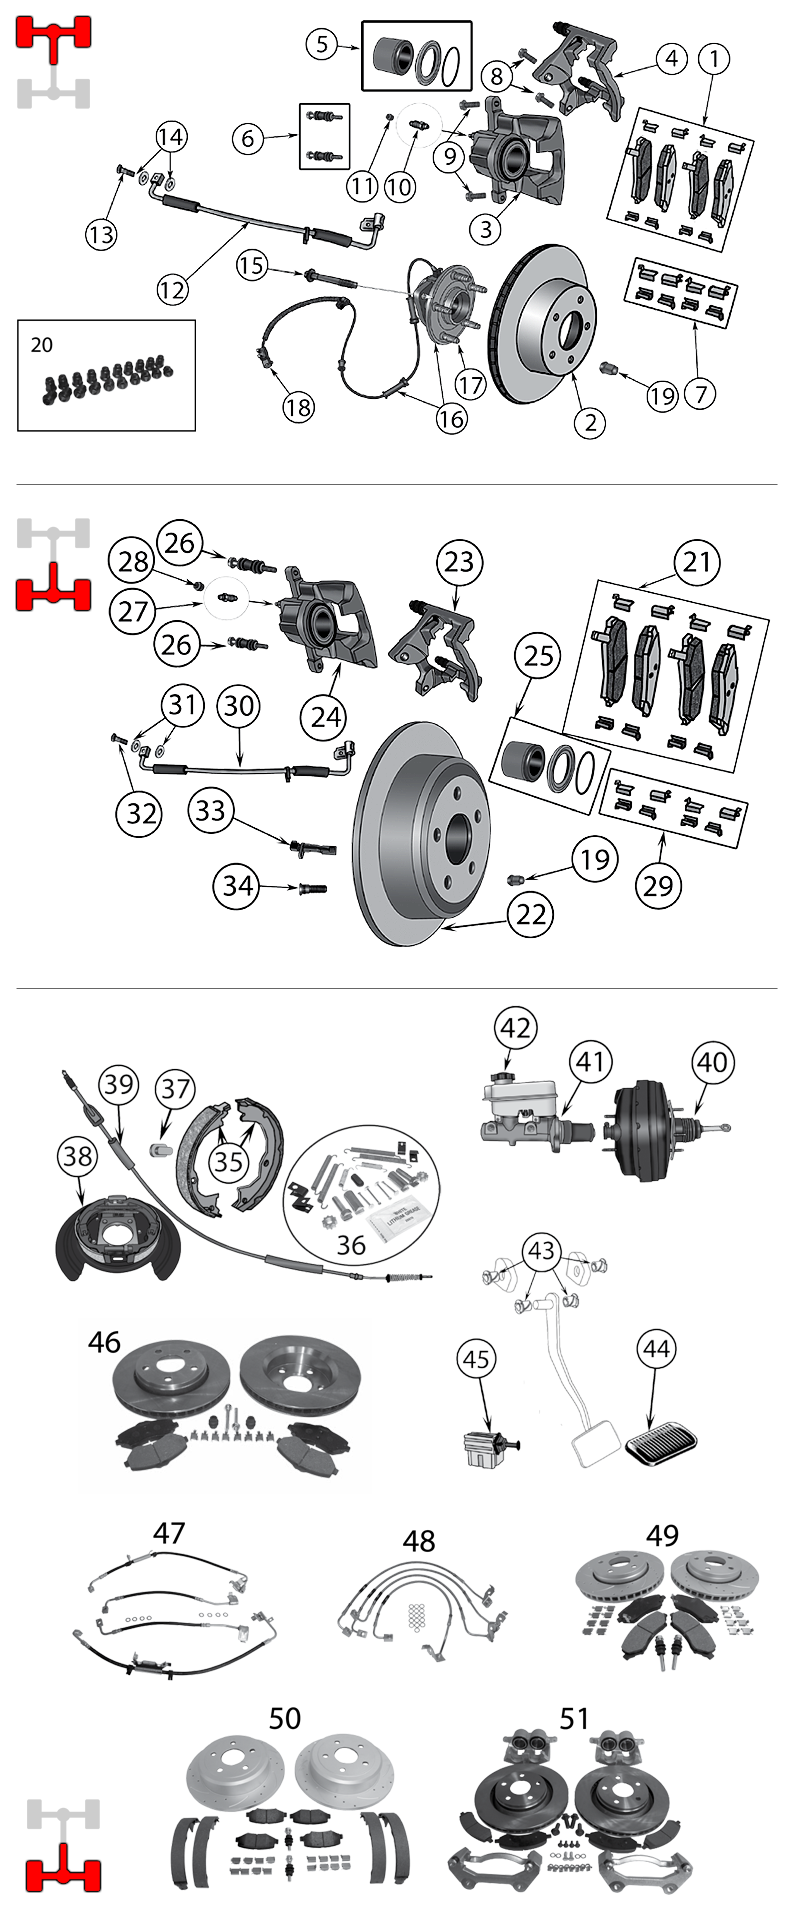 diagram brakes jeep jk wrangler 2007  2017